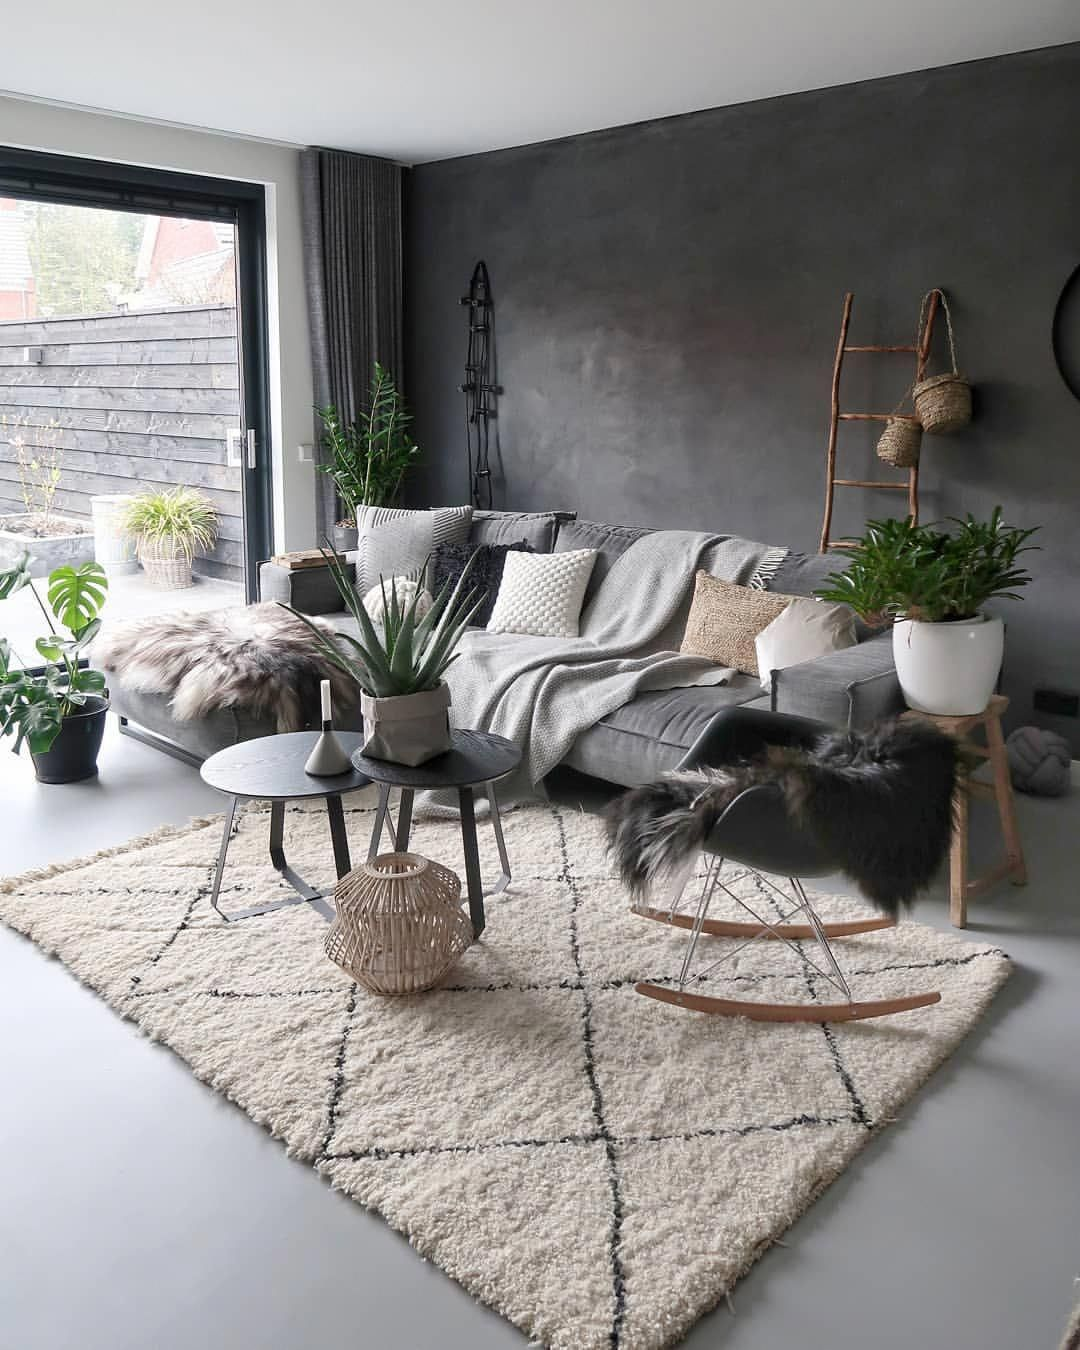 Nordic Style Living Room With White Geometric Rug Grey Sofa